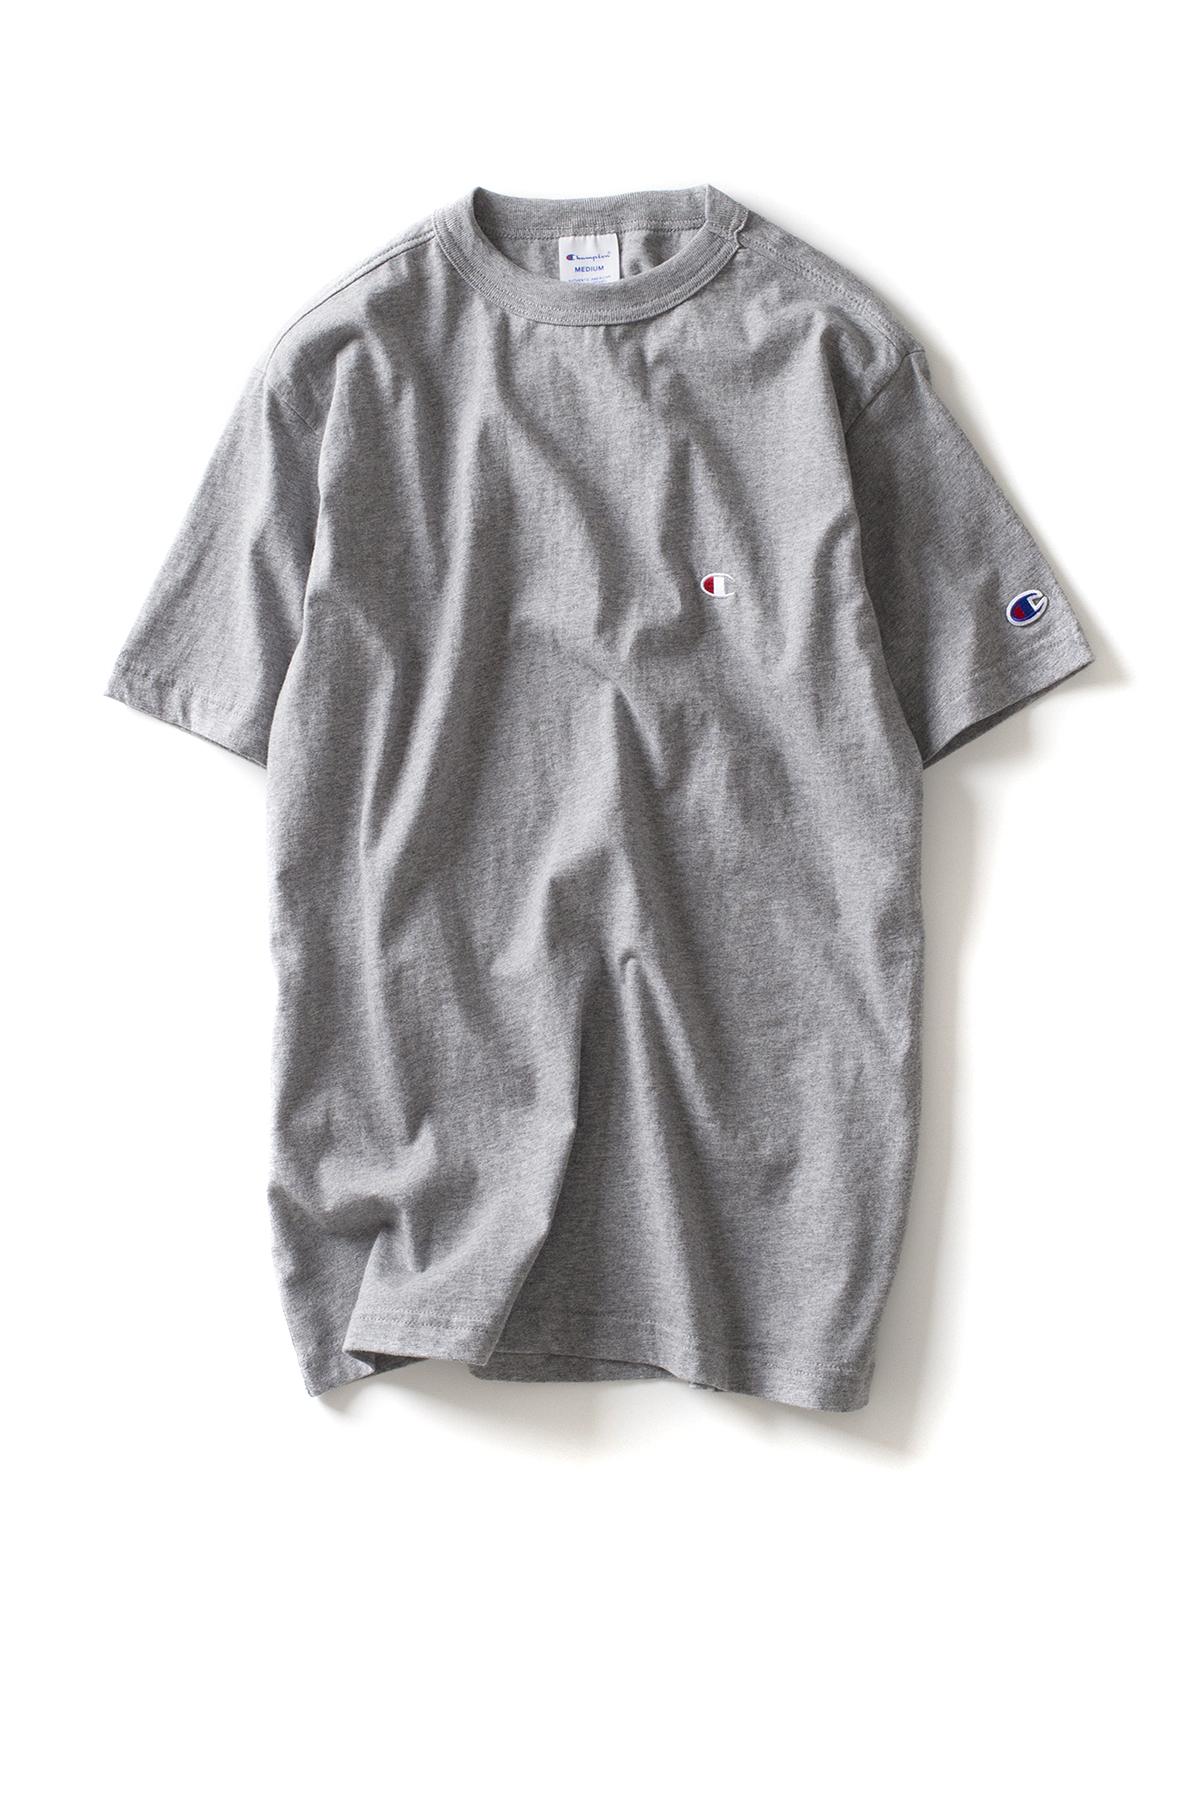 Champion : Basic T-Shirt (Grey)